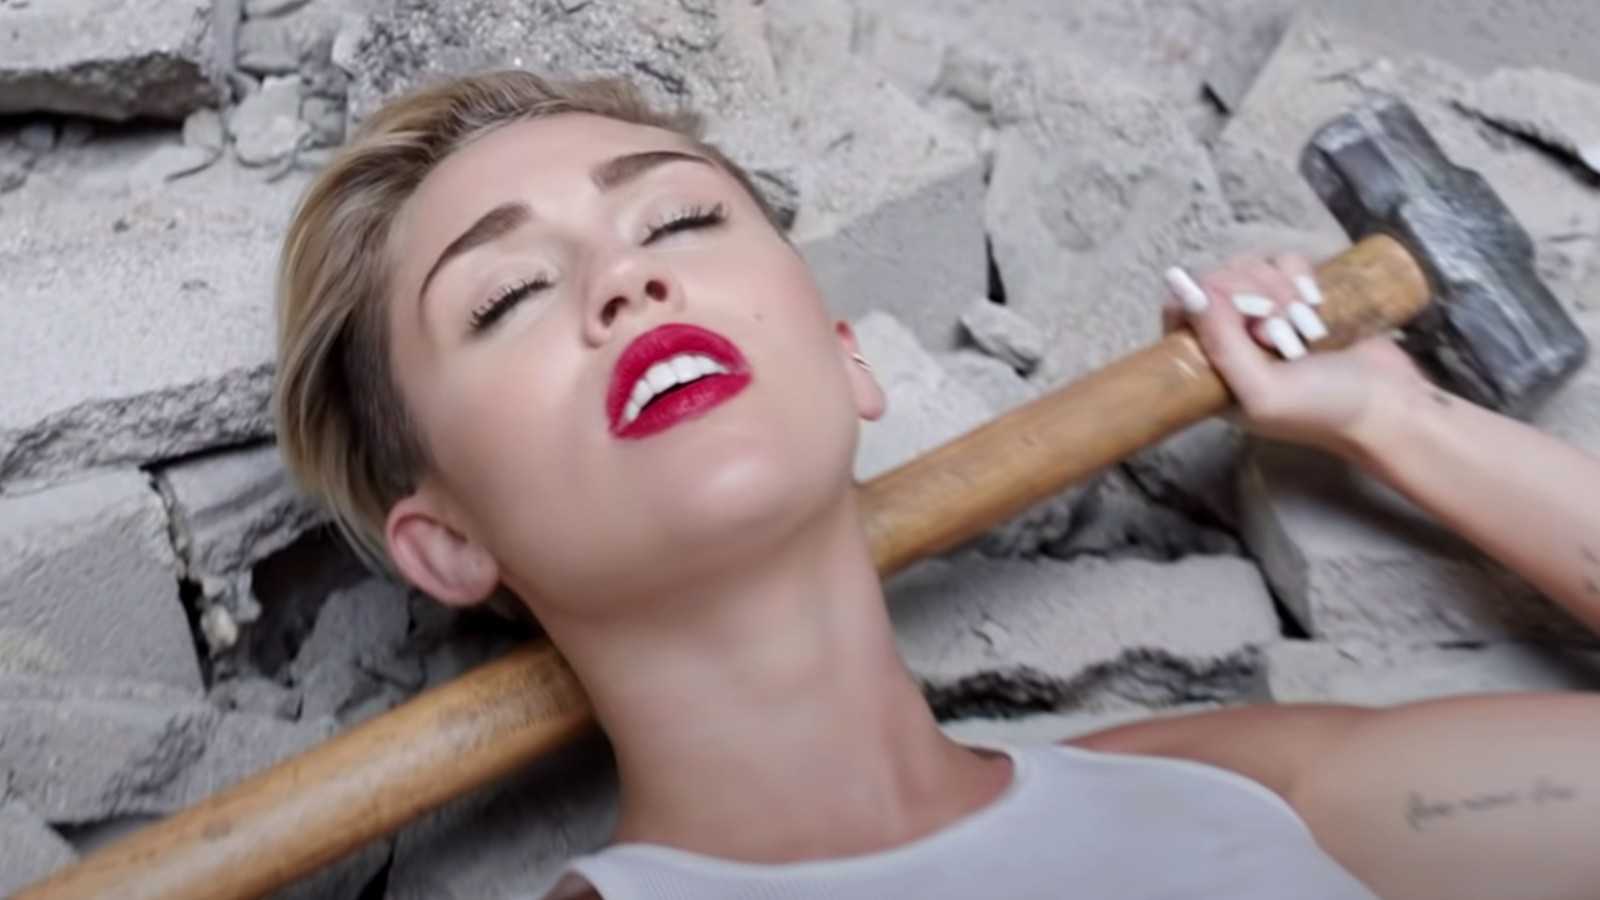 Miley Cyrus in her video for Wrecking Ball